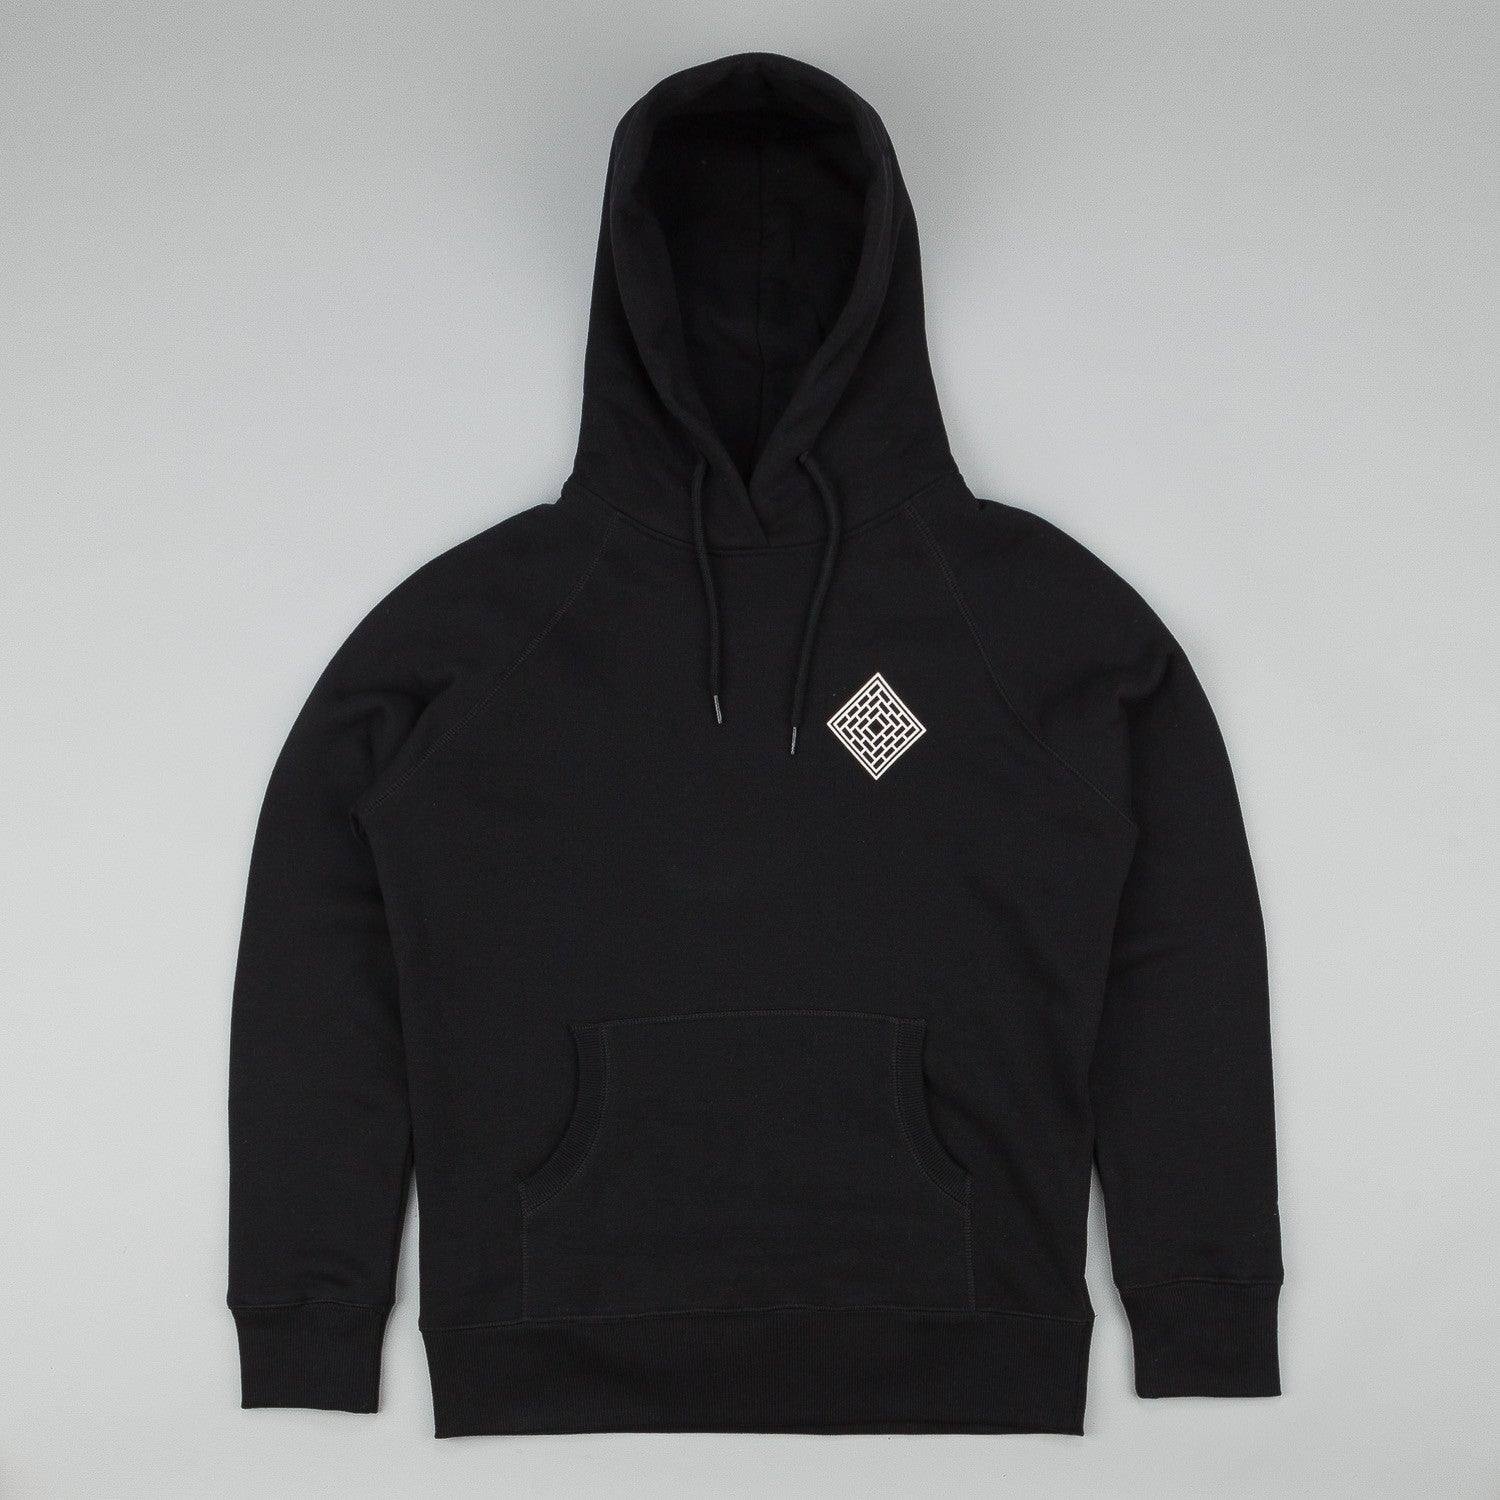 The National Skateboard Co Mono Logo Hooded Sweatshirt - Black